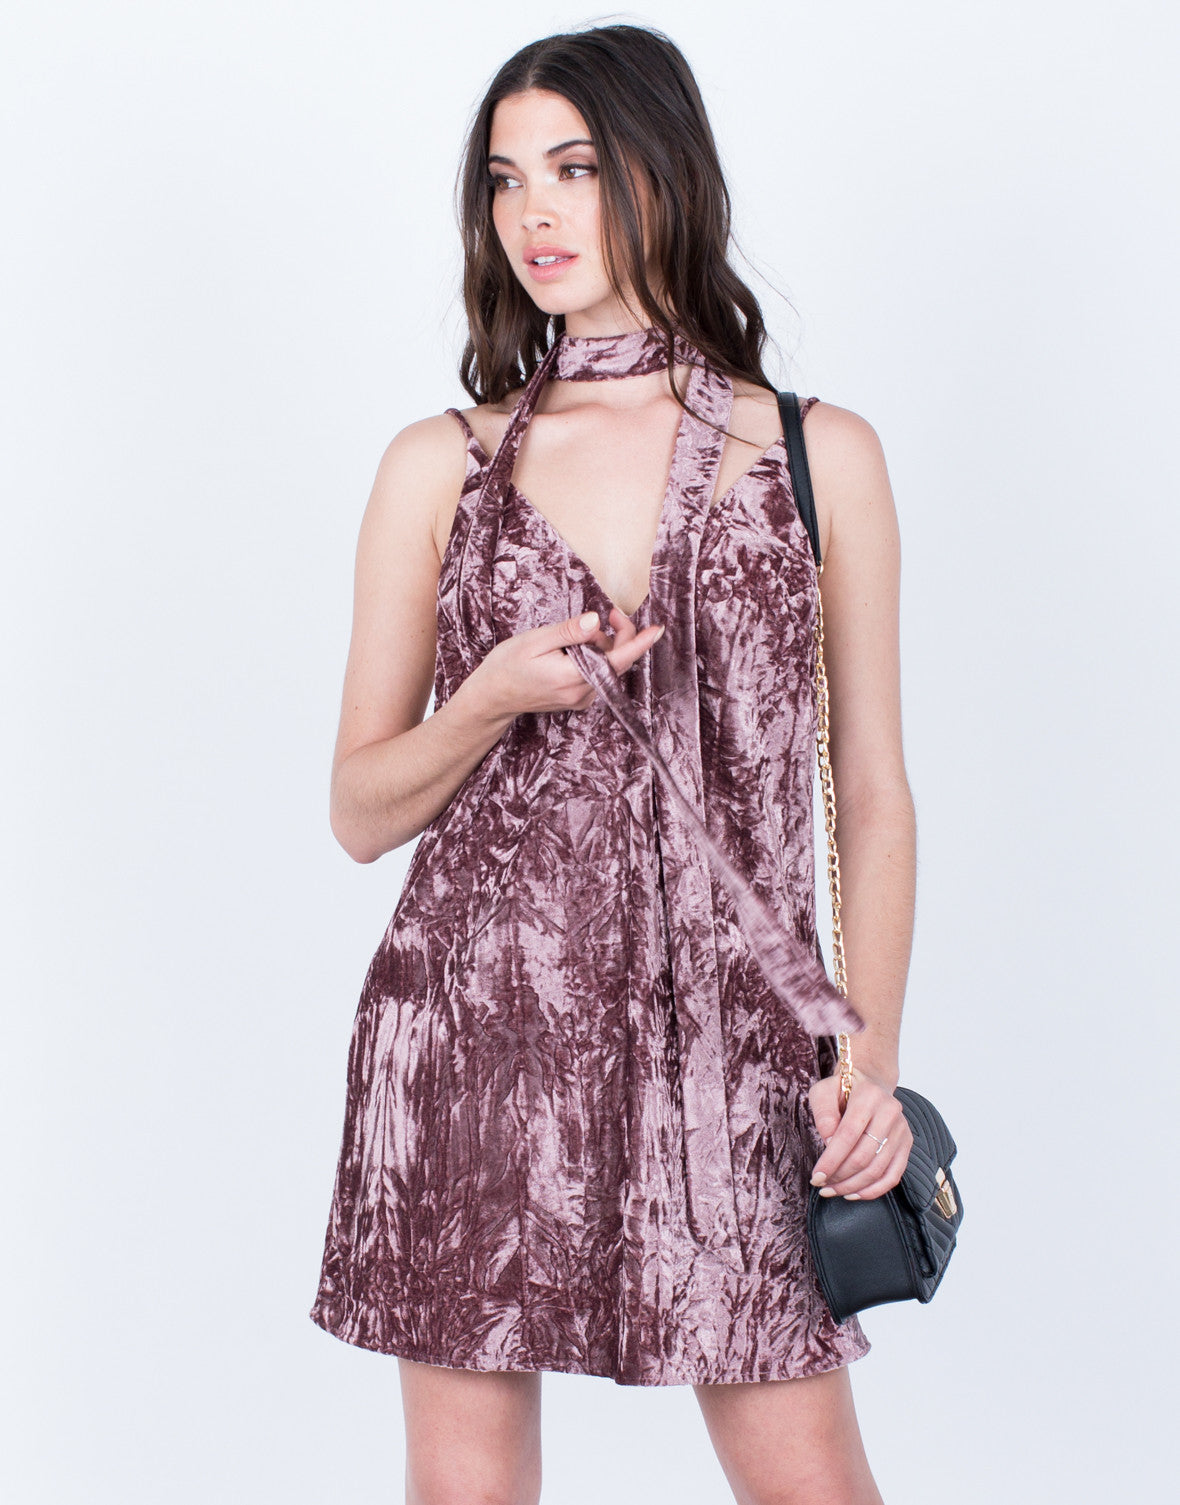 velvet crush party dress  dark purple dress  velvet